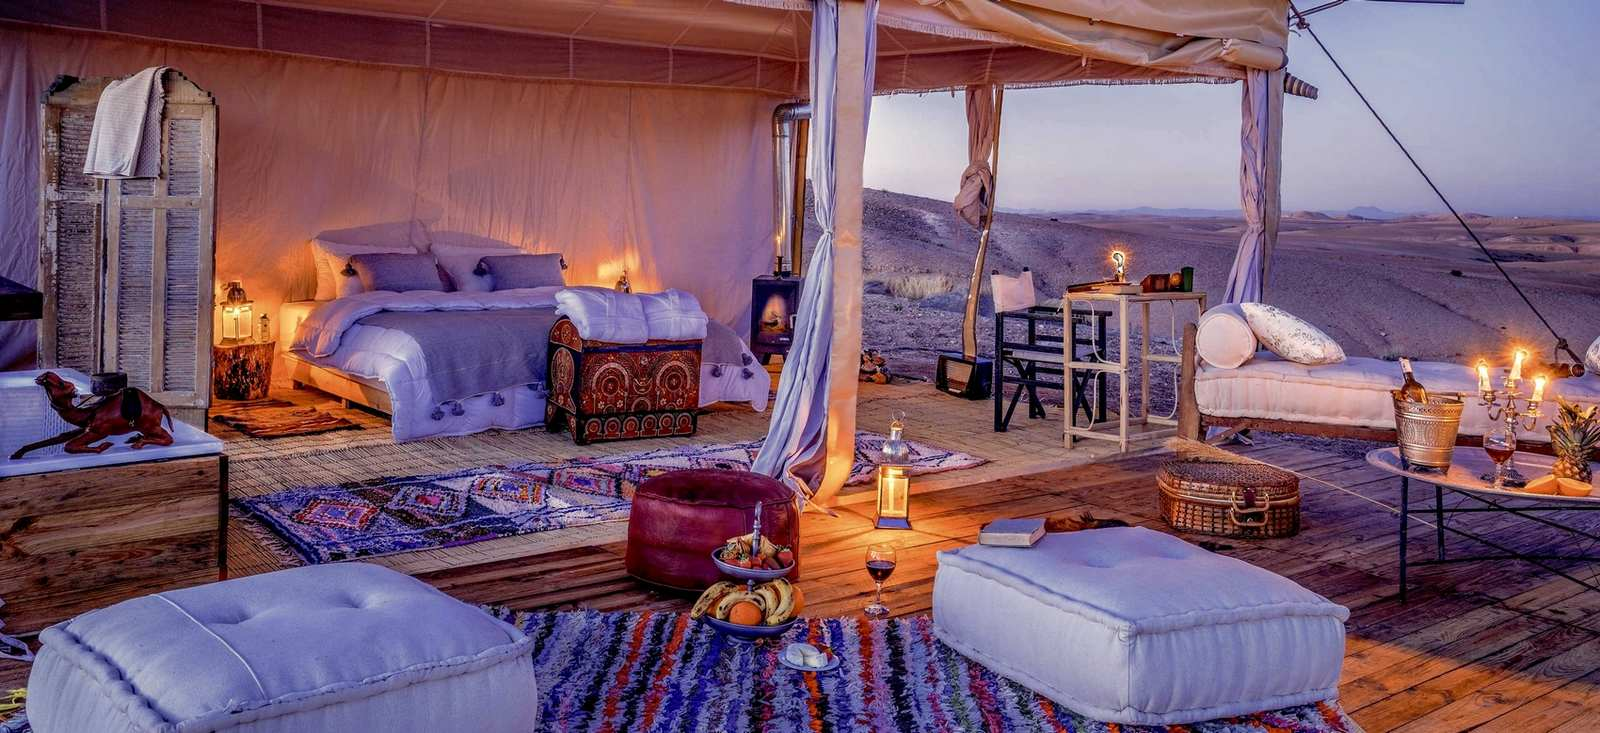 4 Must-knows before your Morocco Honeymoon!